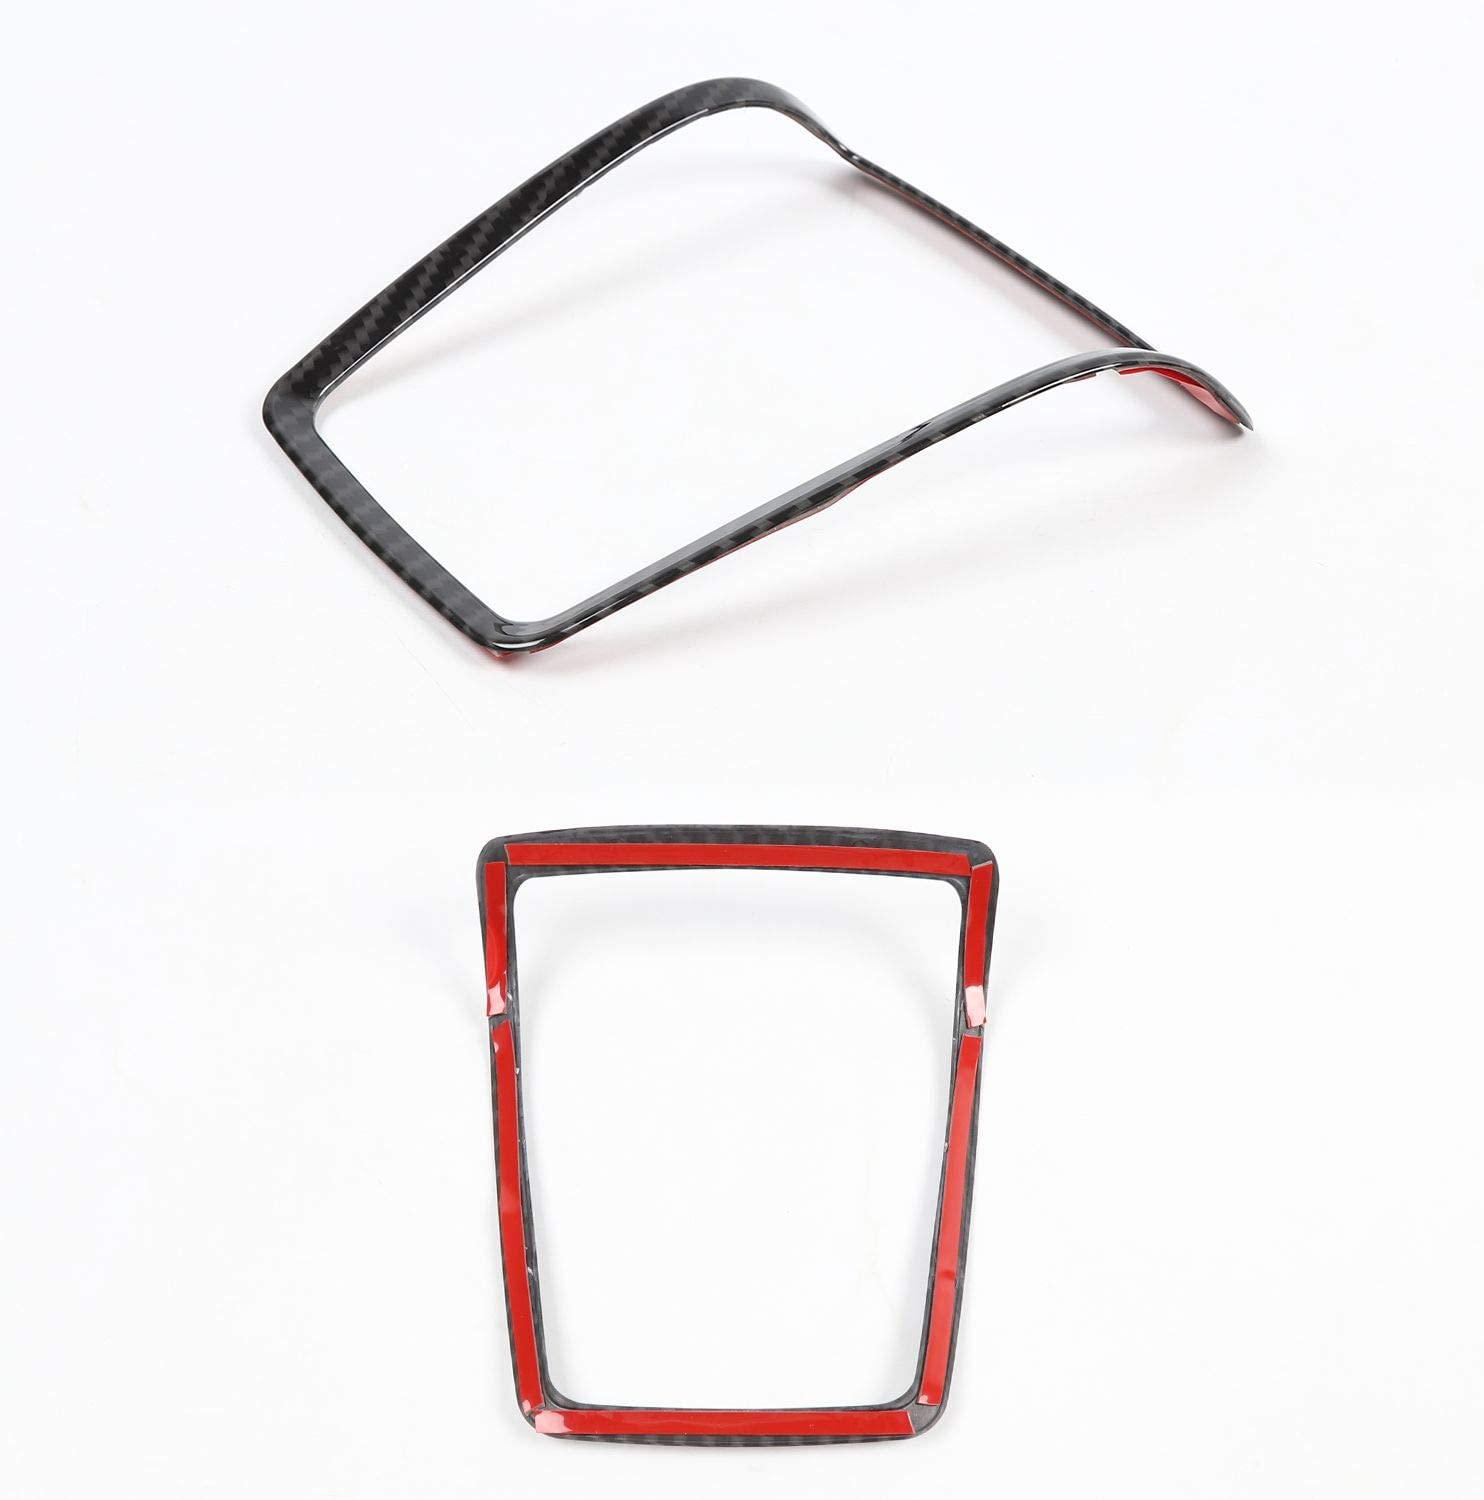 Voodonala for 2009-2014 Ford F150 Steering Wheel Accessories Cover Trim ABS Red 2 pcs